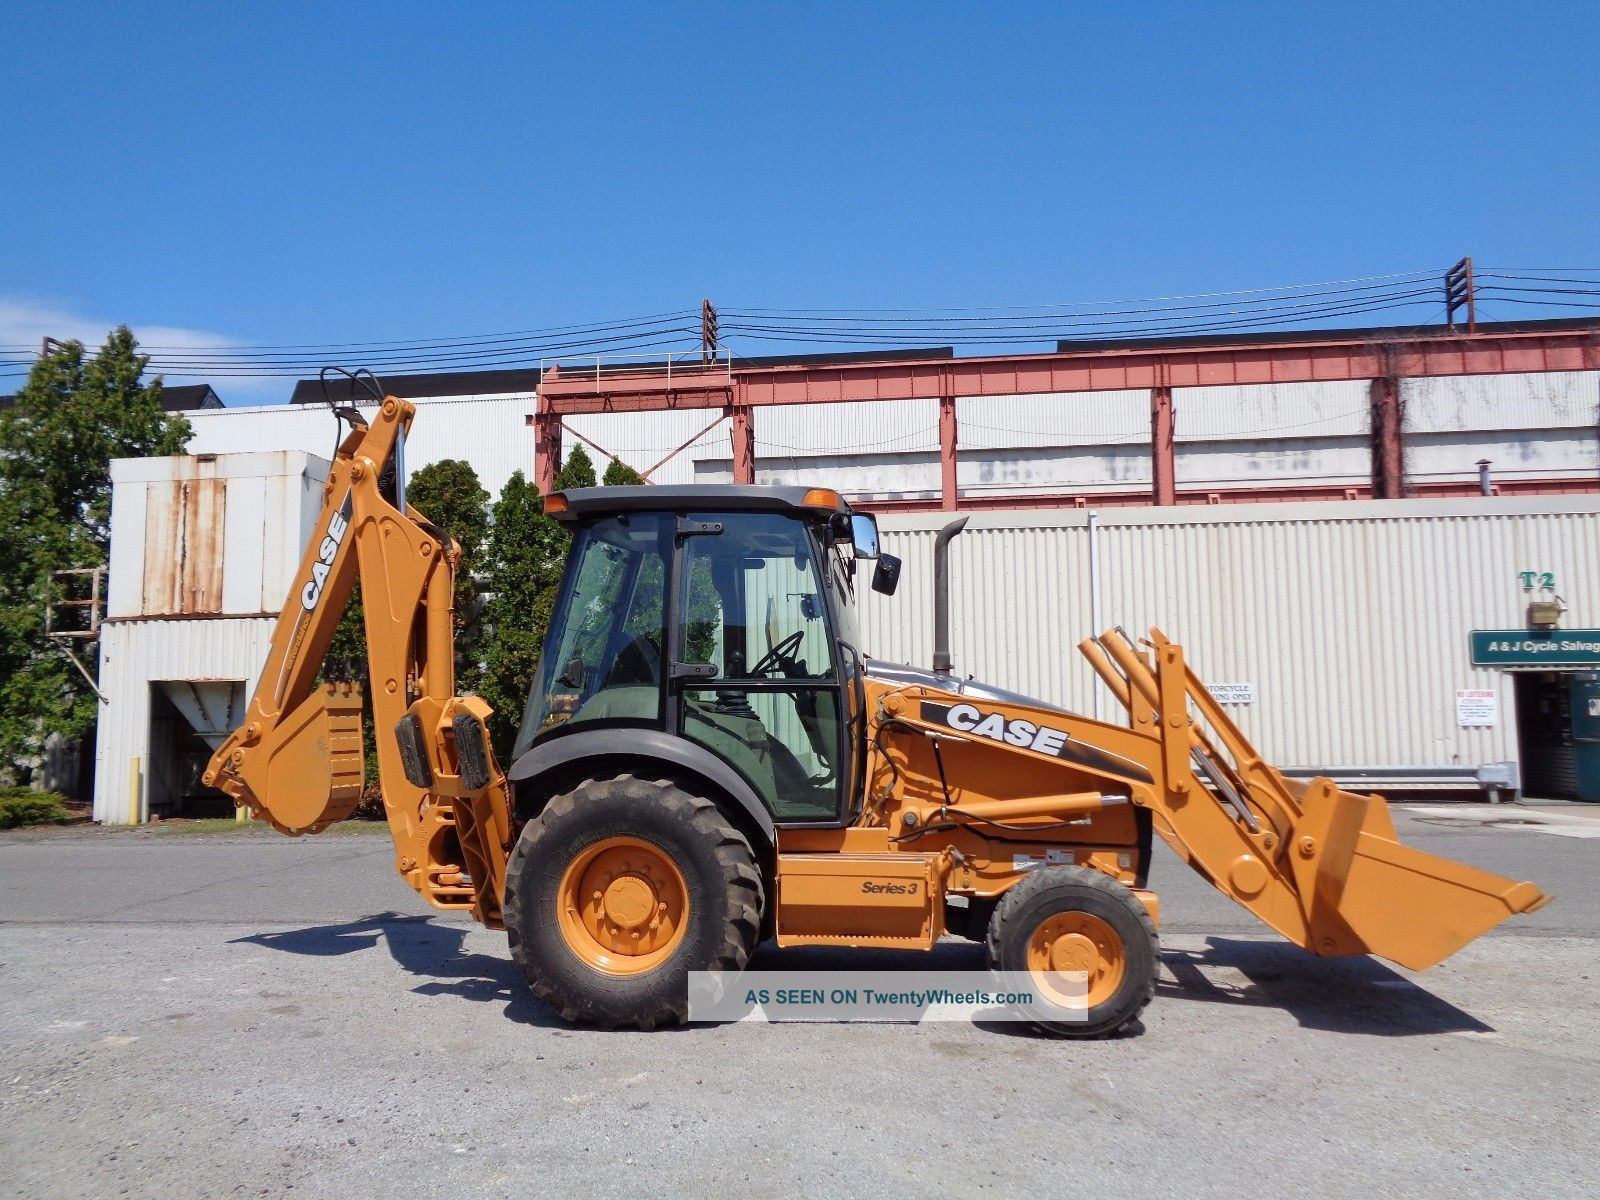 case 580m cooling system with 29550 2009 Case 580m Series 3 Backhoe Loader   4x4   Extendahoe   Ac  Heat   Diesel on I 16553103 118901a1 Pin in addition 201658797758 furthermore THERMOSTAT ENGINE COOLING SYSTEM PZl0 further Page 176 in addition Case 580k Backhoe Hydraulic Pump Location.